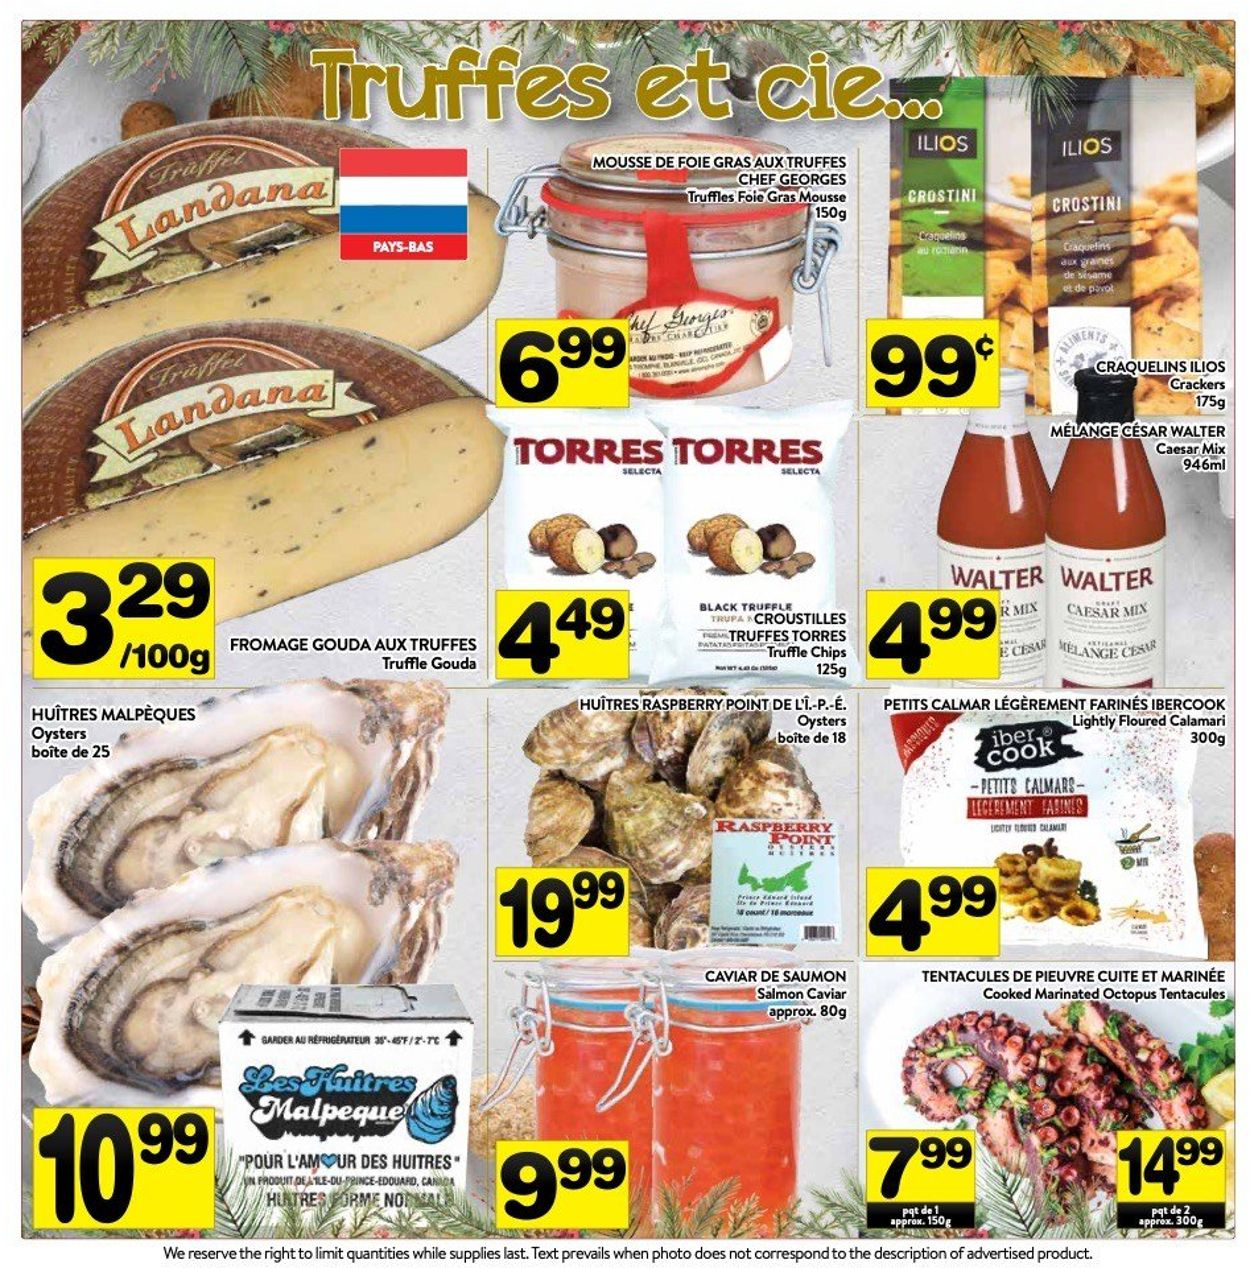 PA Supermarché - Christmas 2020 Flyer - 12/14-12/27/2020 (Page 2)